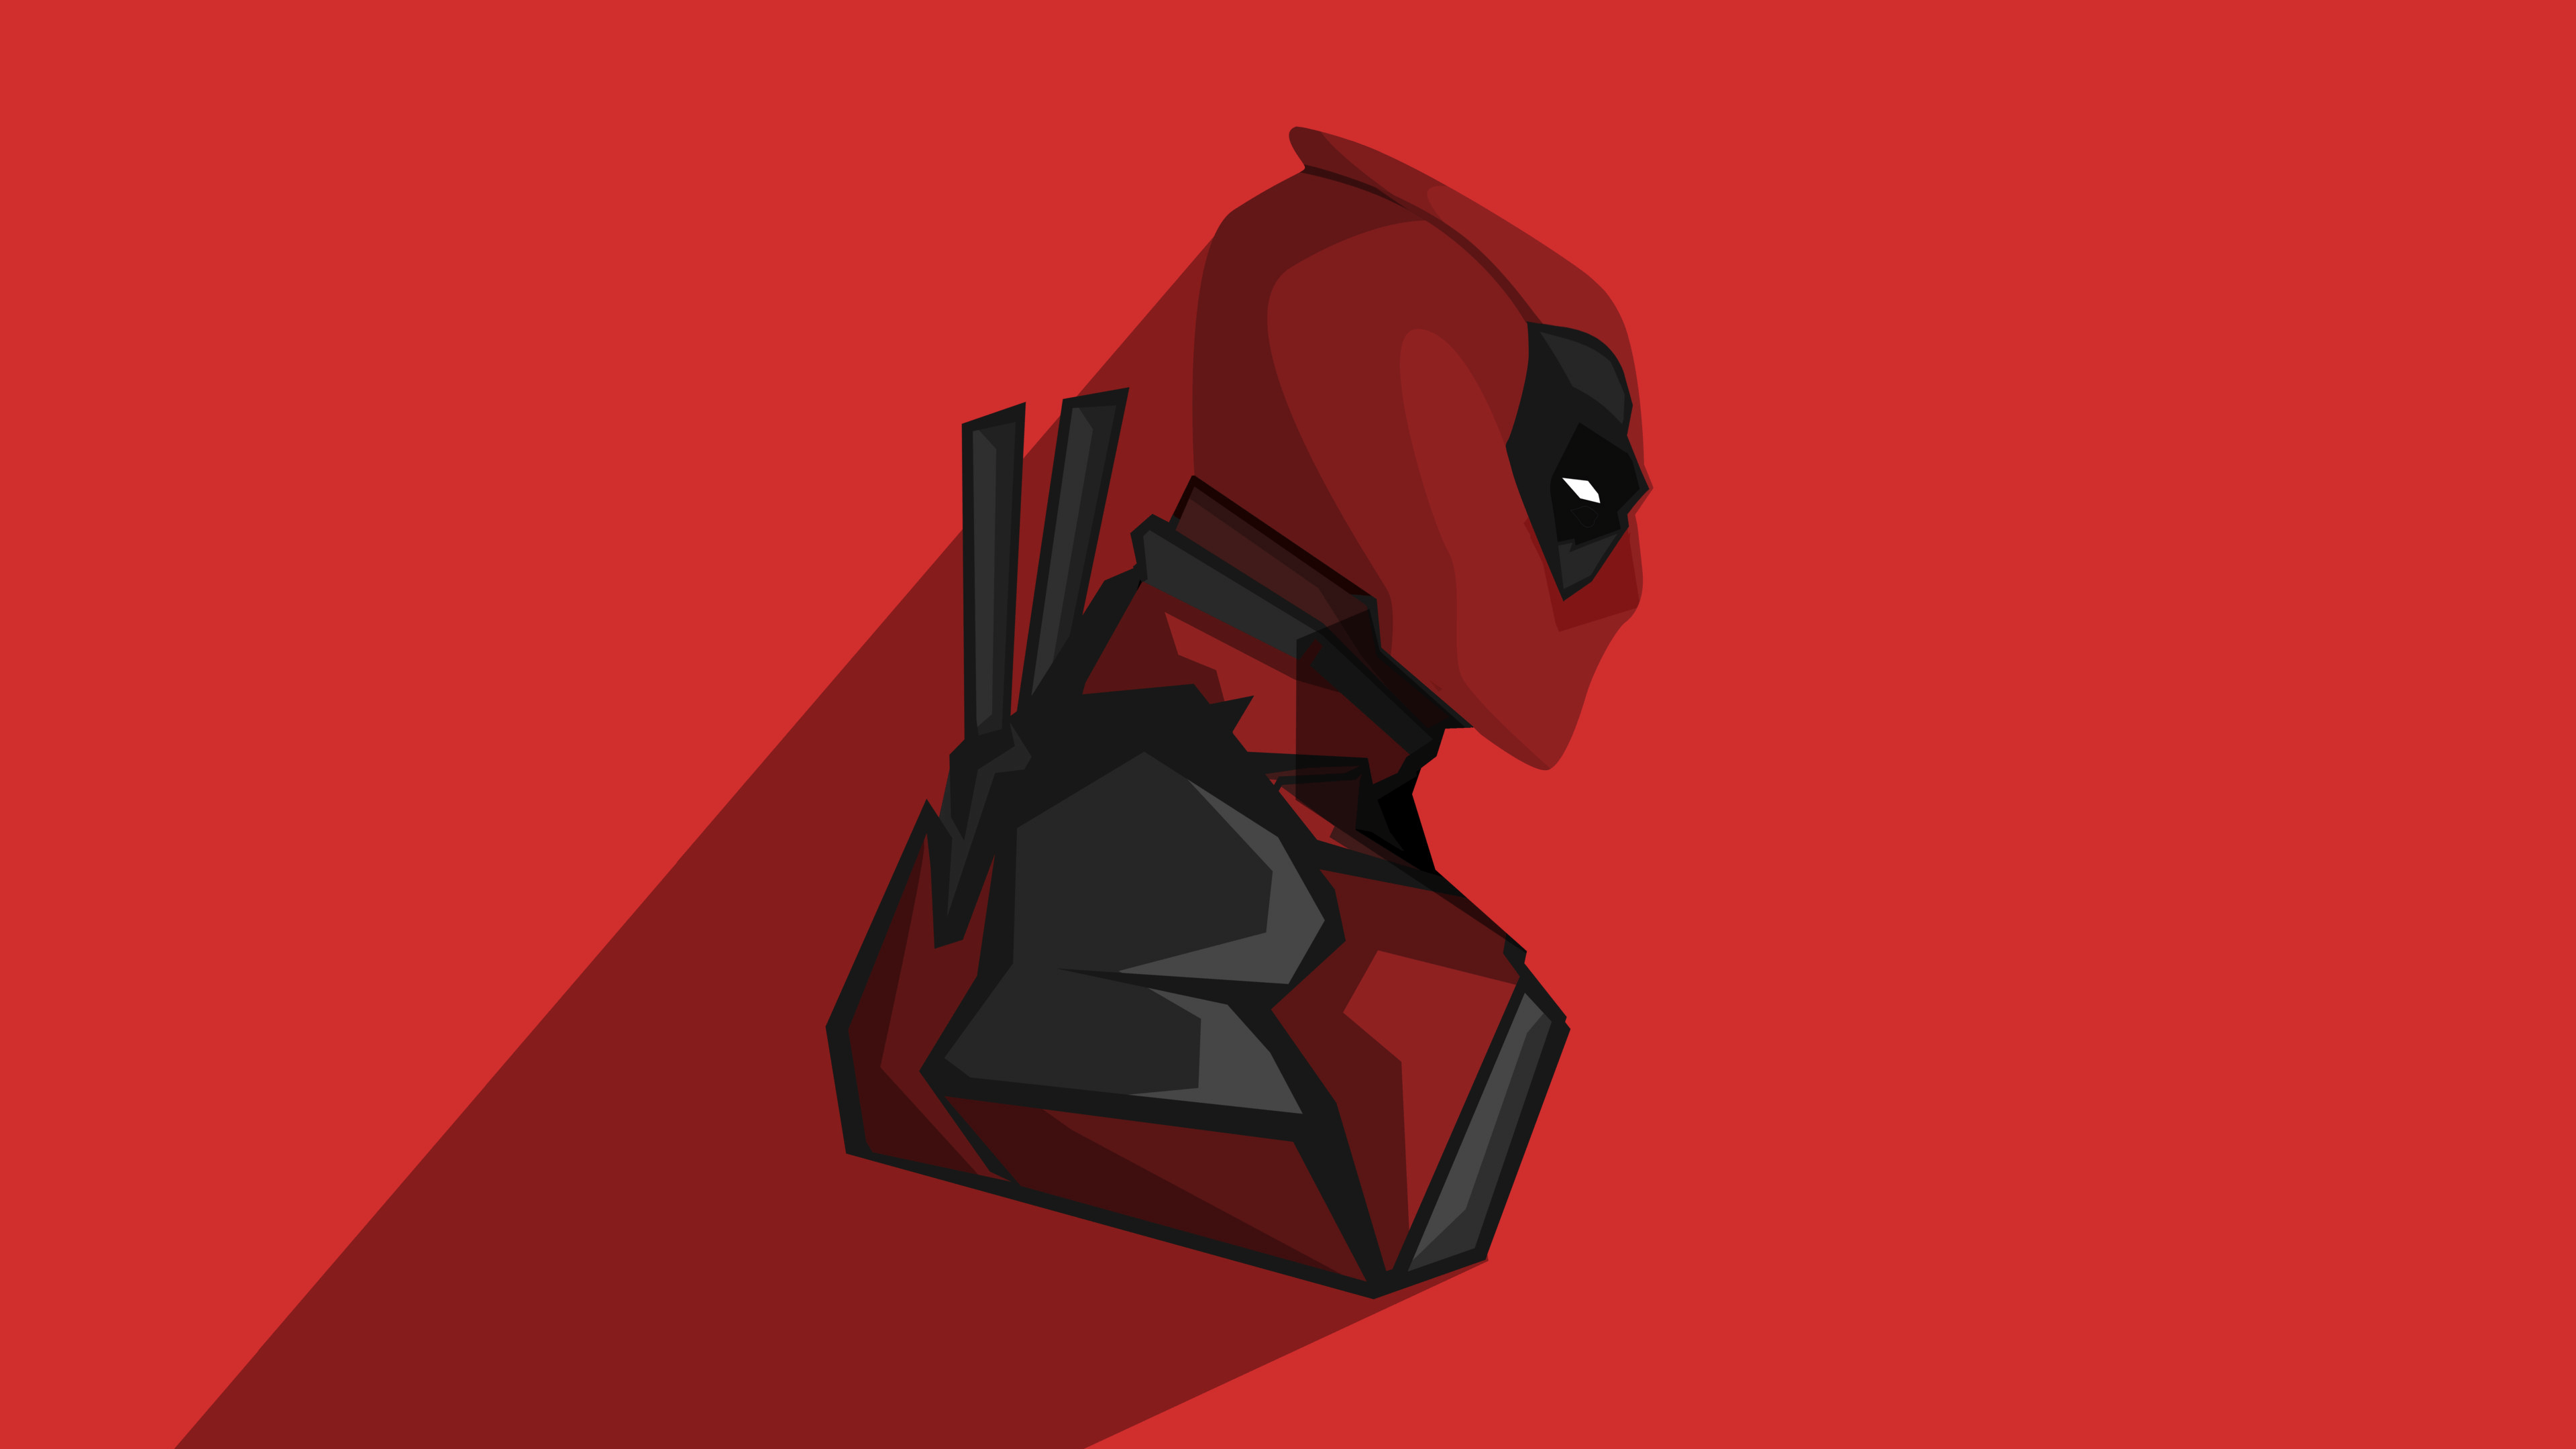 Wallpaper Deadpool